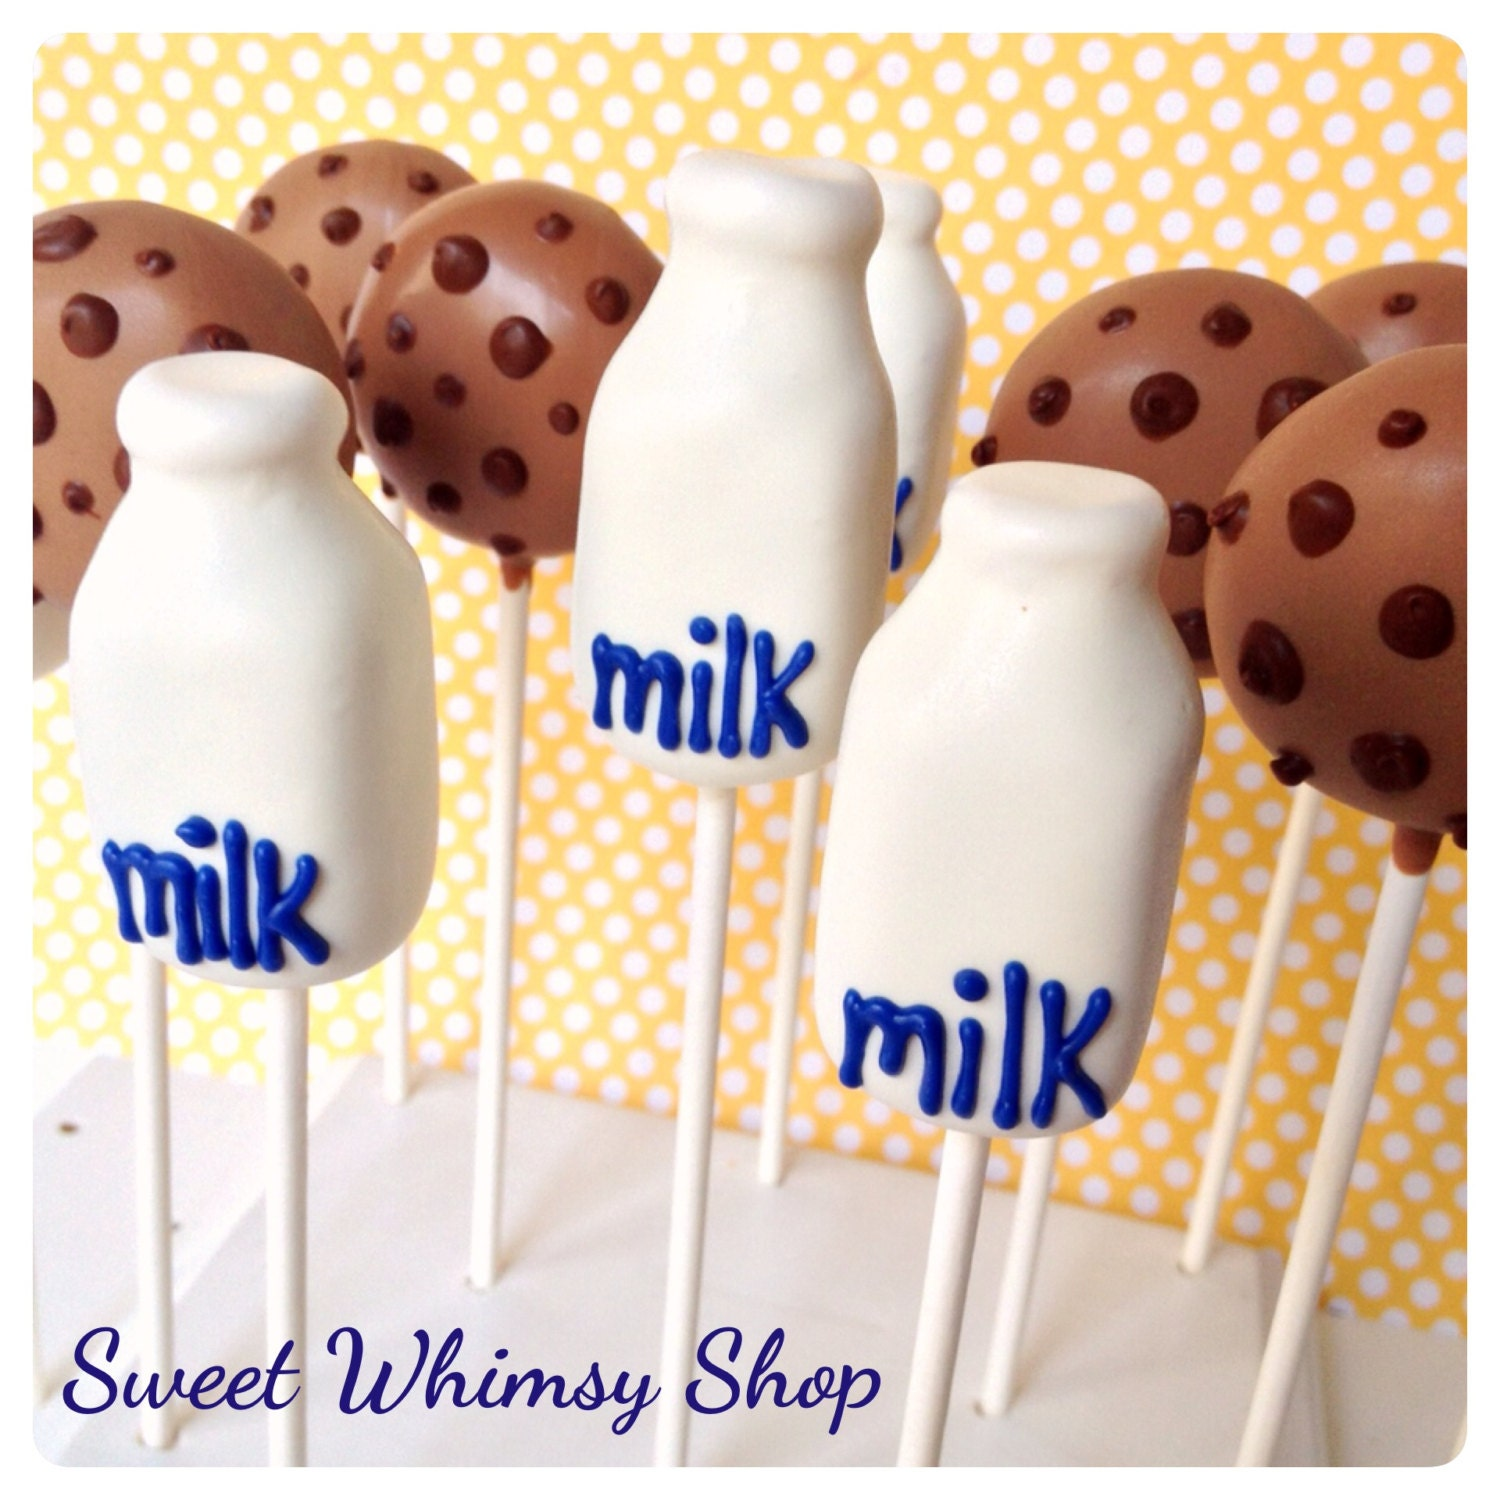 12 Cookies And Milk Bottle Cake Pops For Sleepover Or Pajama